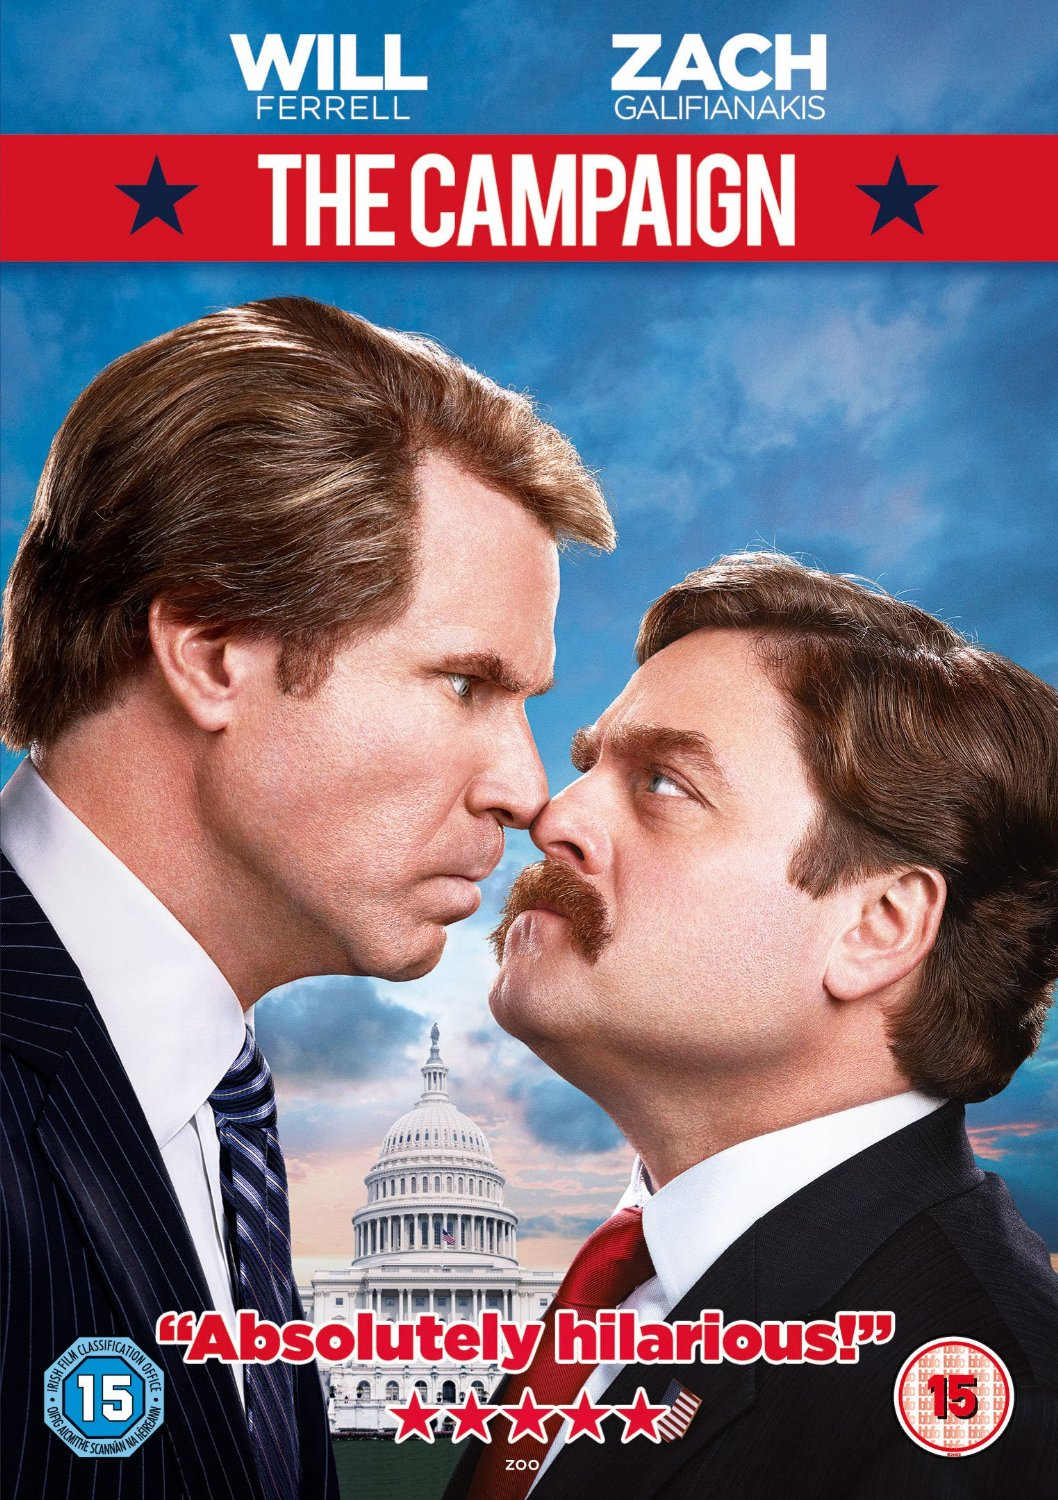 The Campaign - comedy film